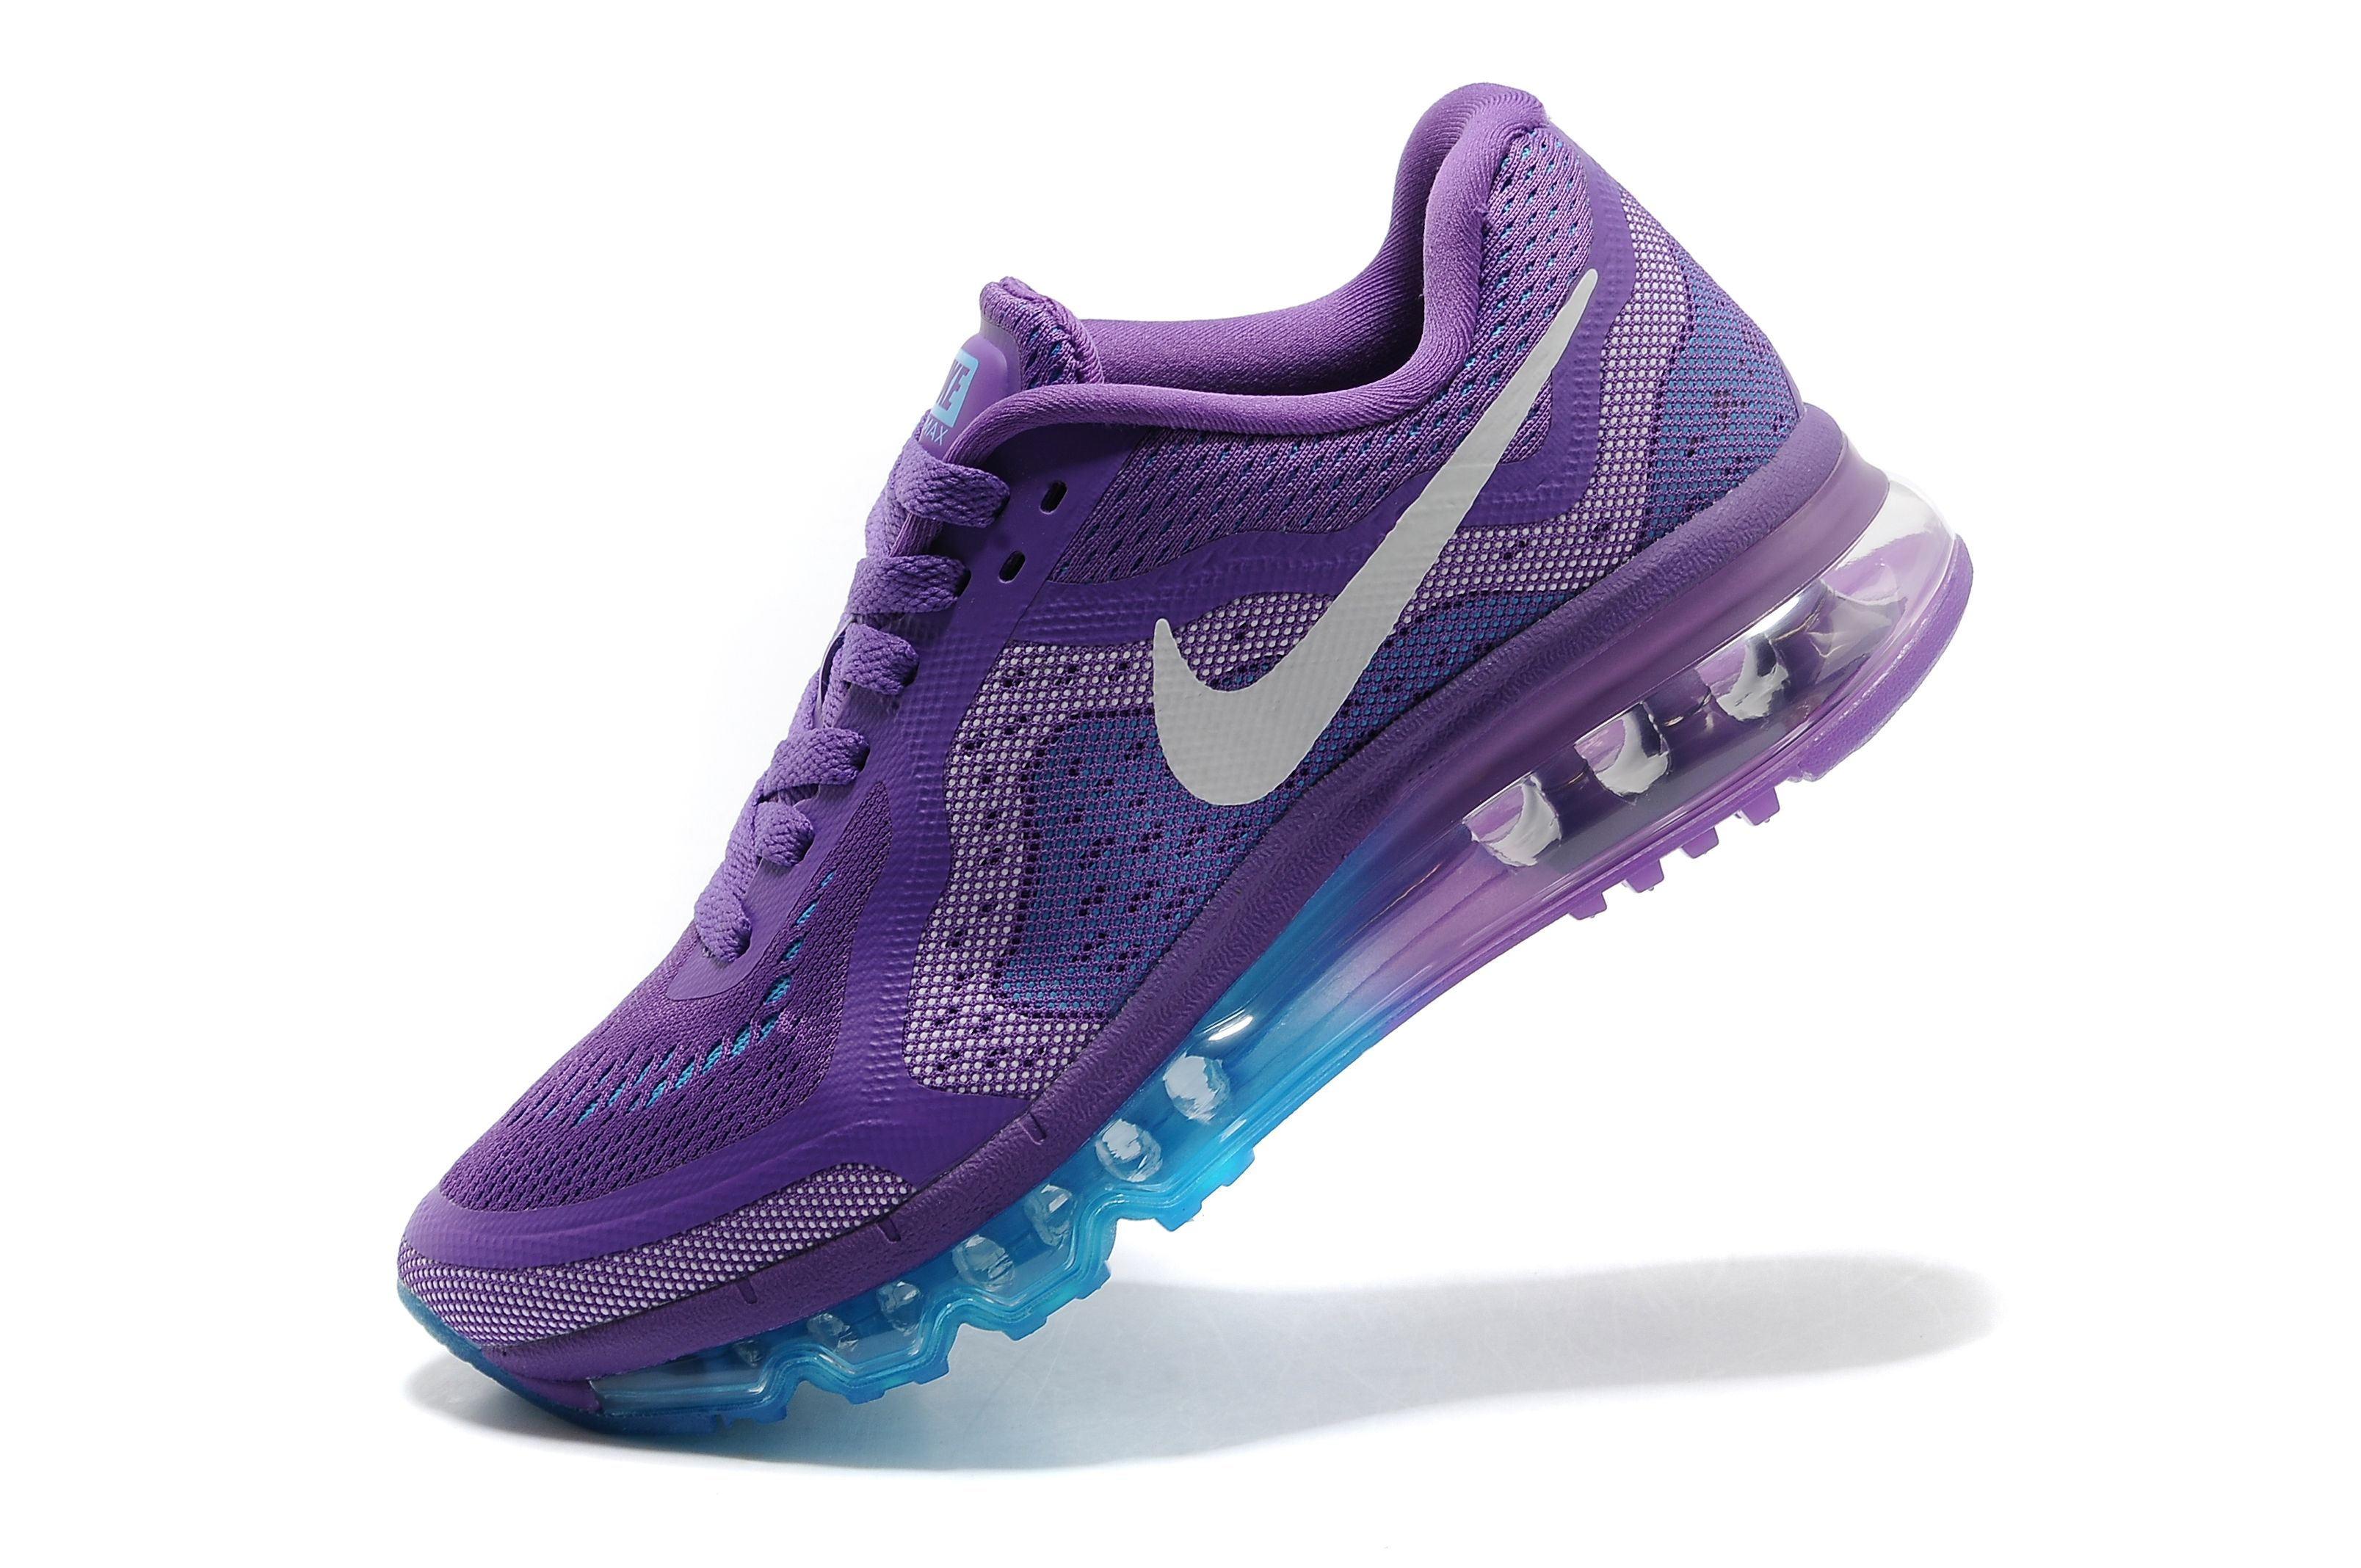 Nike Air Max 2014 Womens Running Shoes Purple White Blue.jpg (3216×2136